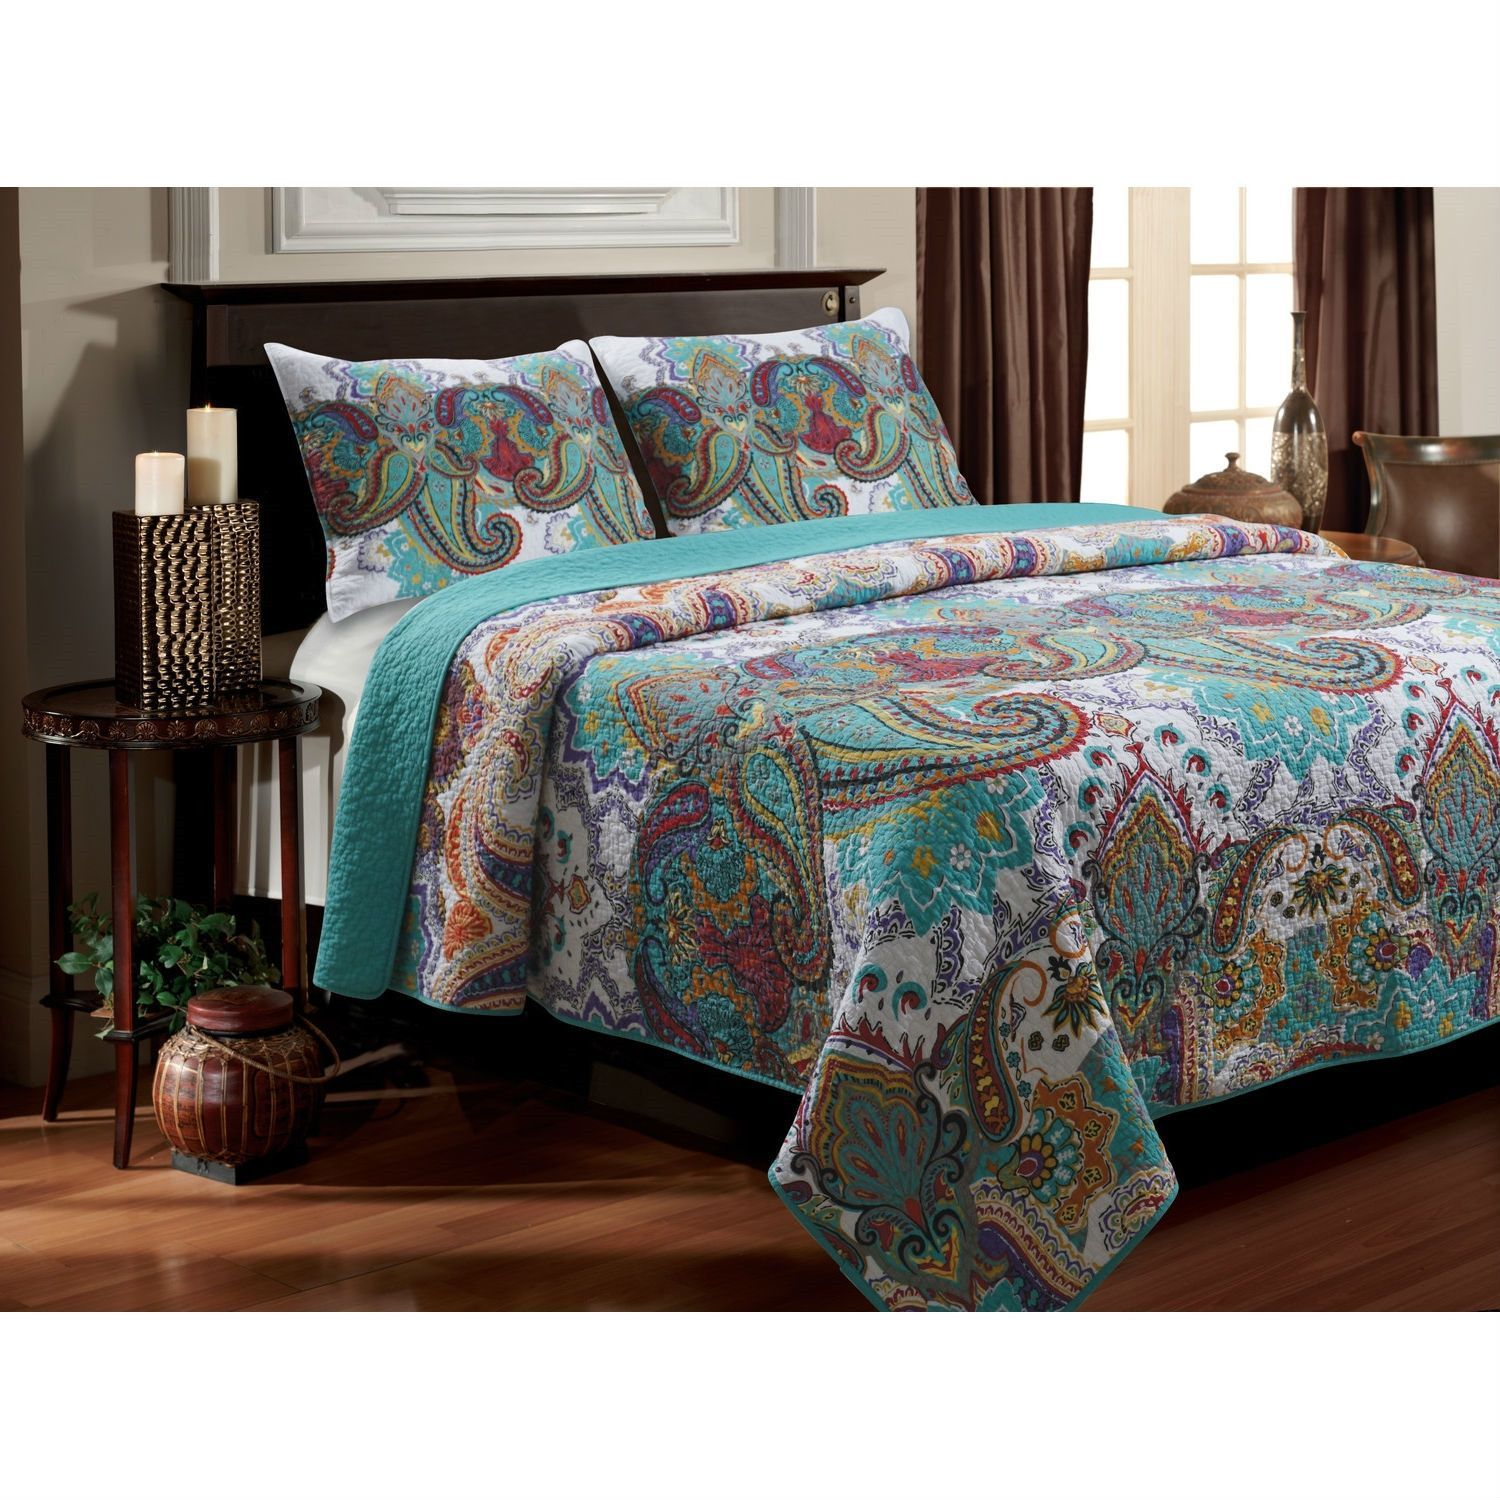 blue setsblue decorative bedding cute tan bedroom quilt designernggray wonderful designs grey design and quilts baby with gray paisley